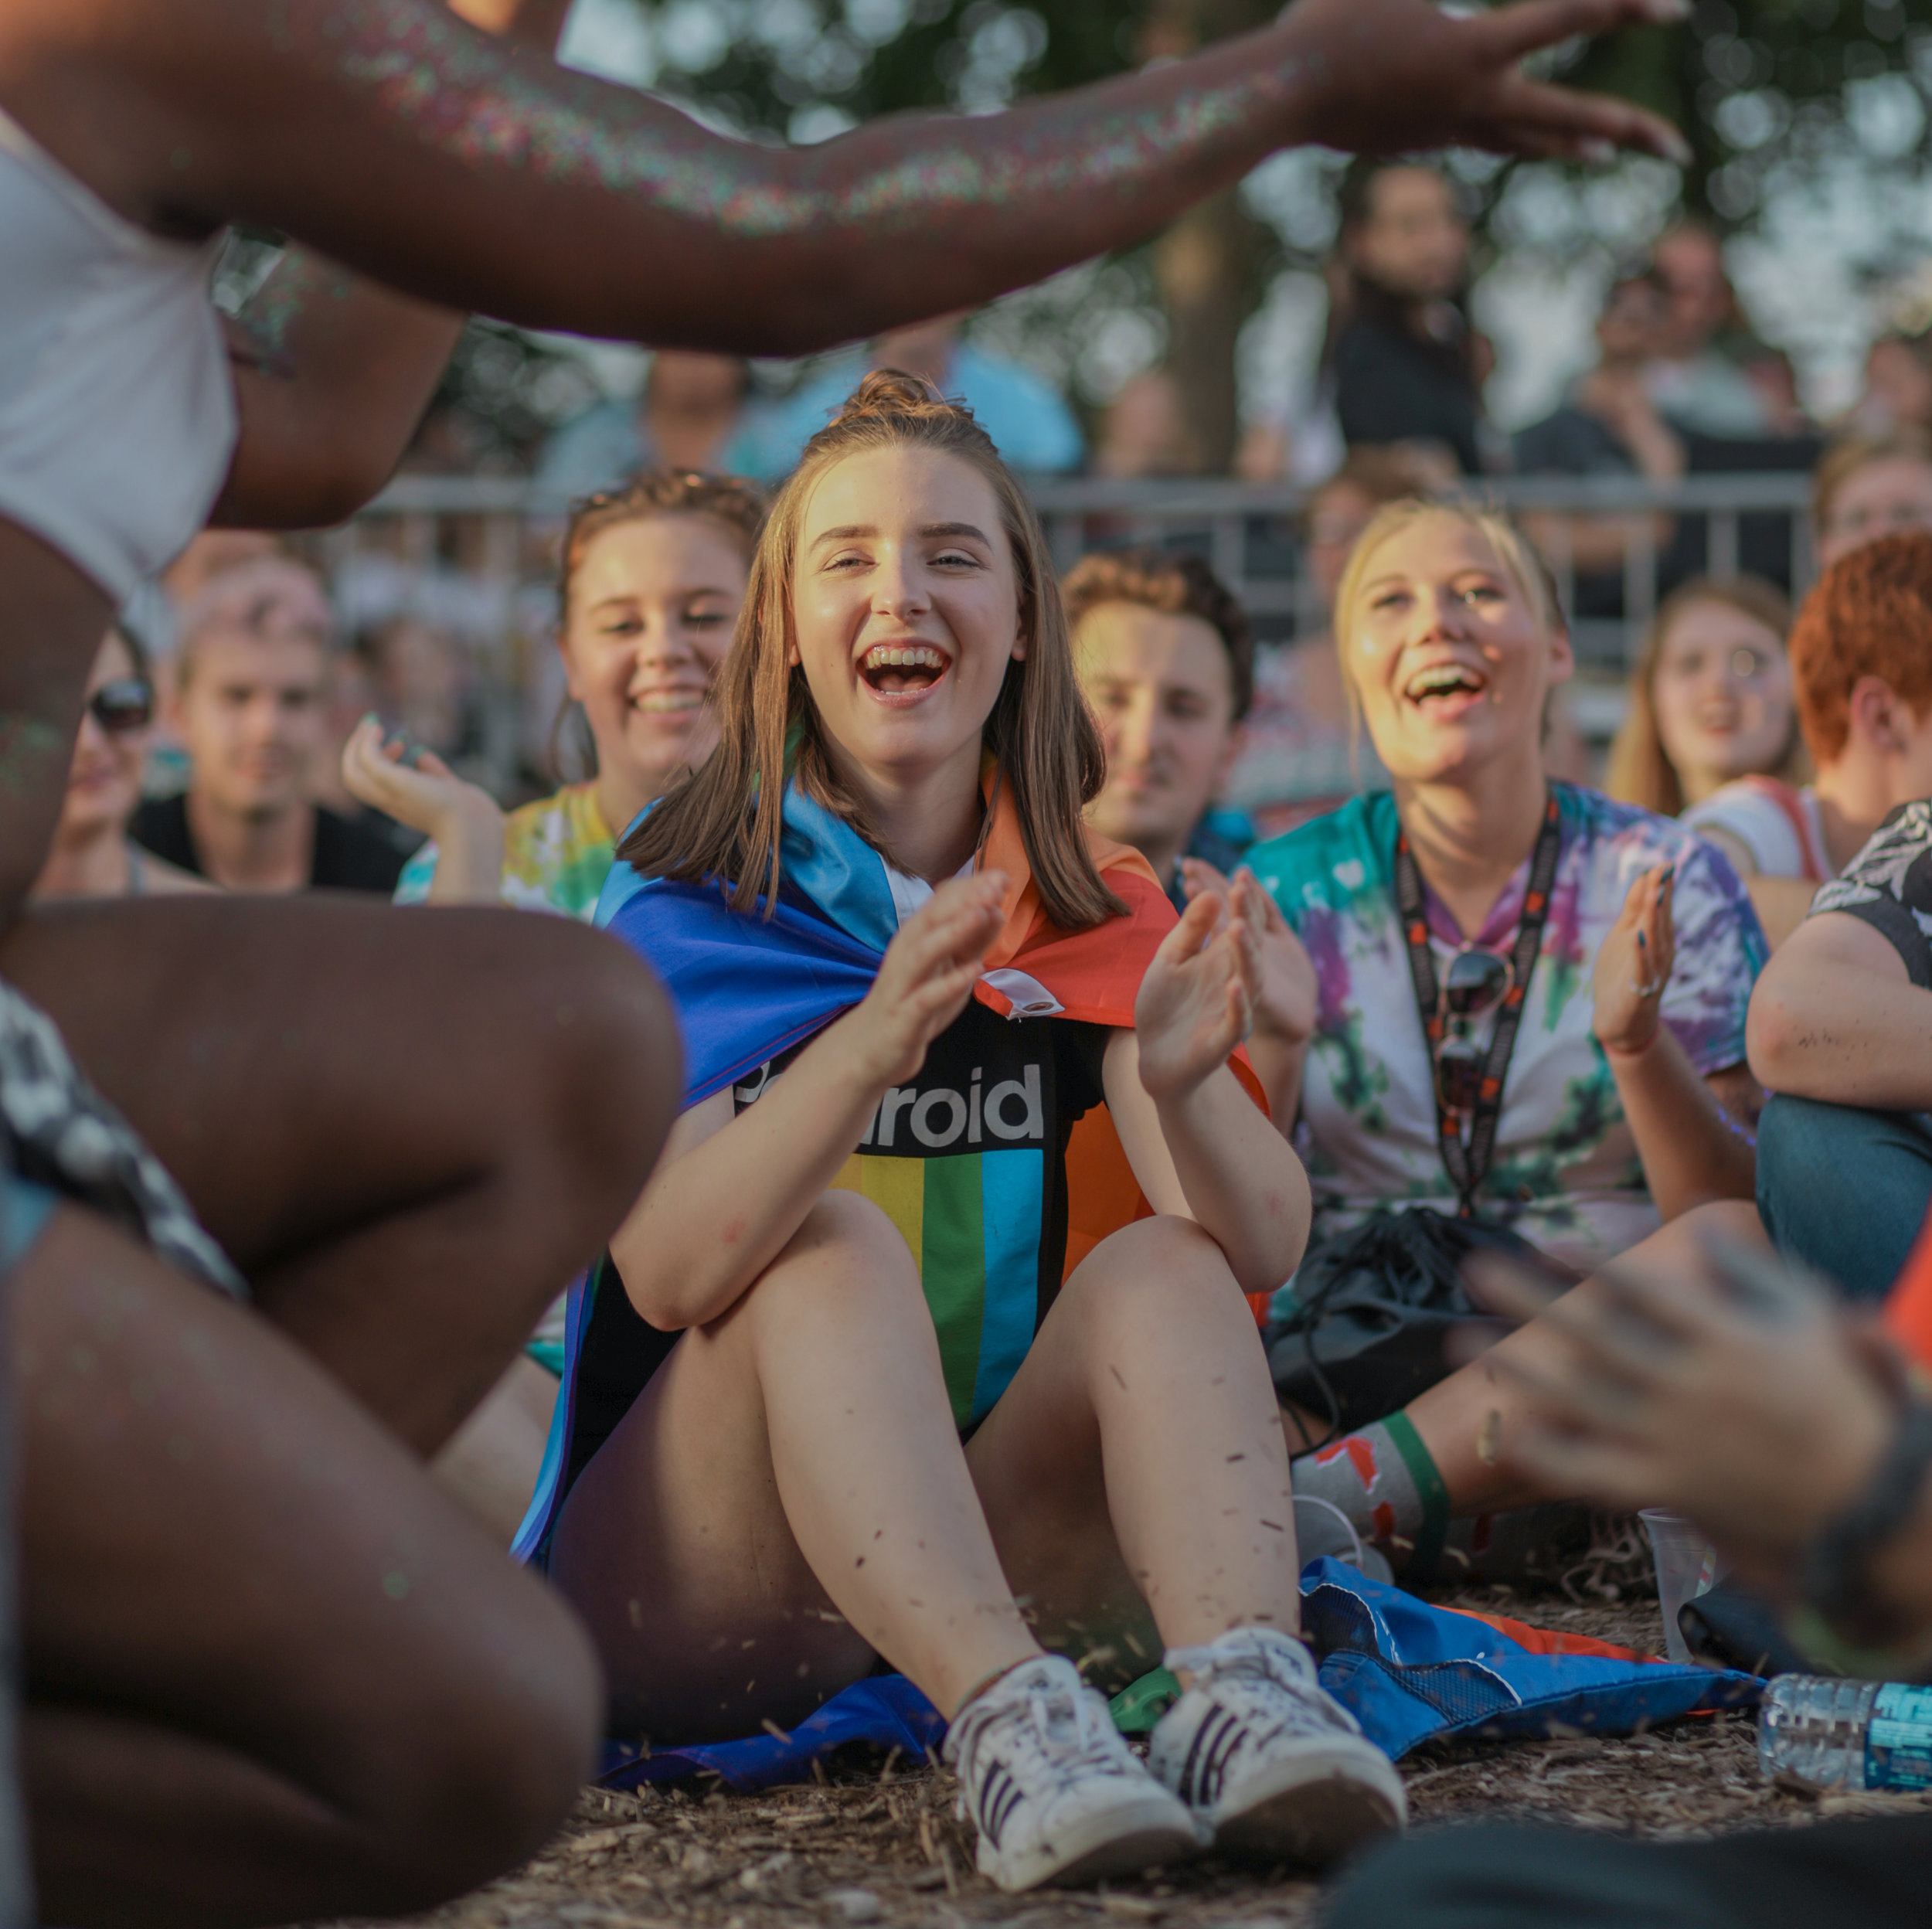 Attendees of the MidMO PrideFest watch drag performer Black Icing perfrom on Saturday, August 25, 2018 at Rose Music Hall.